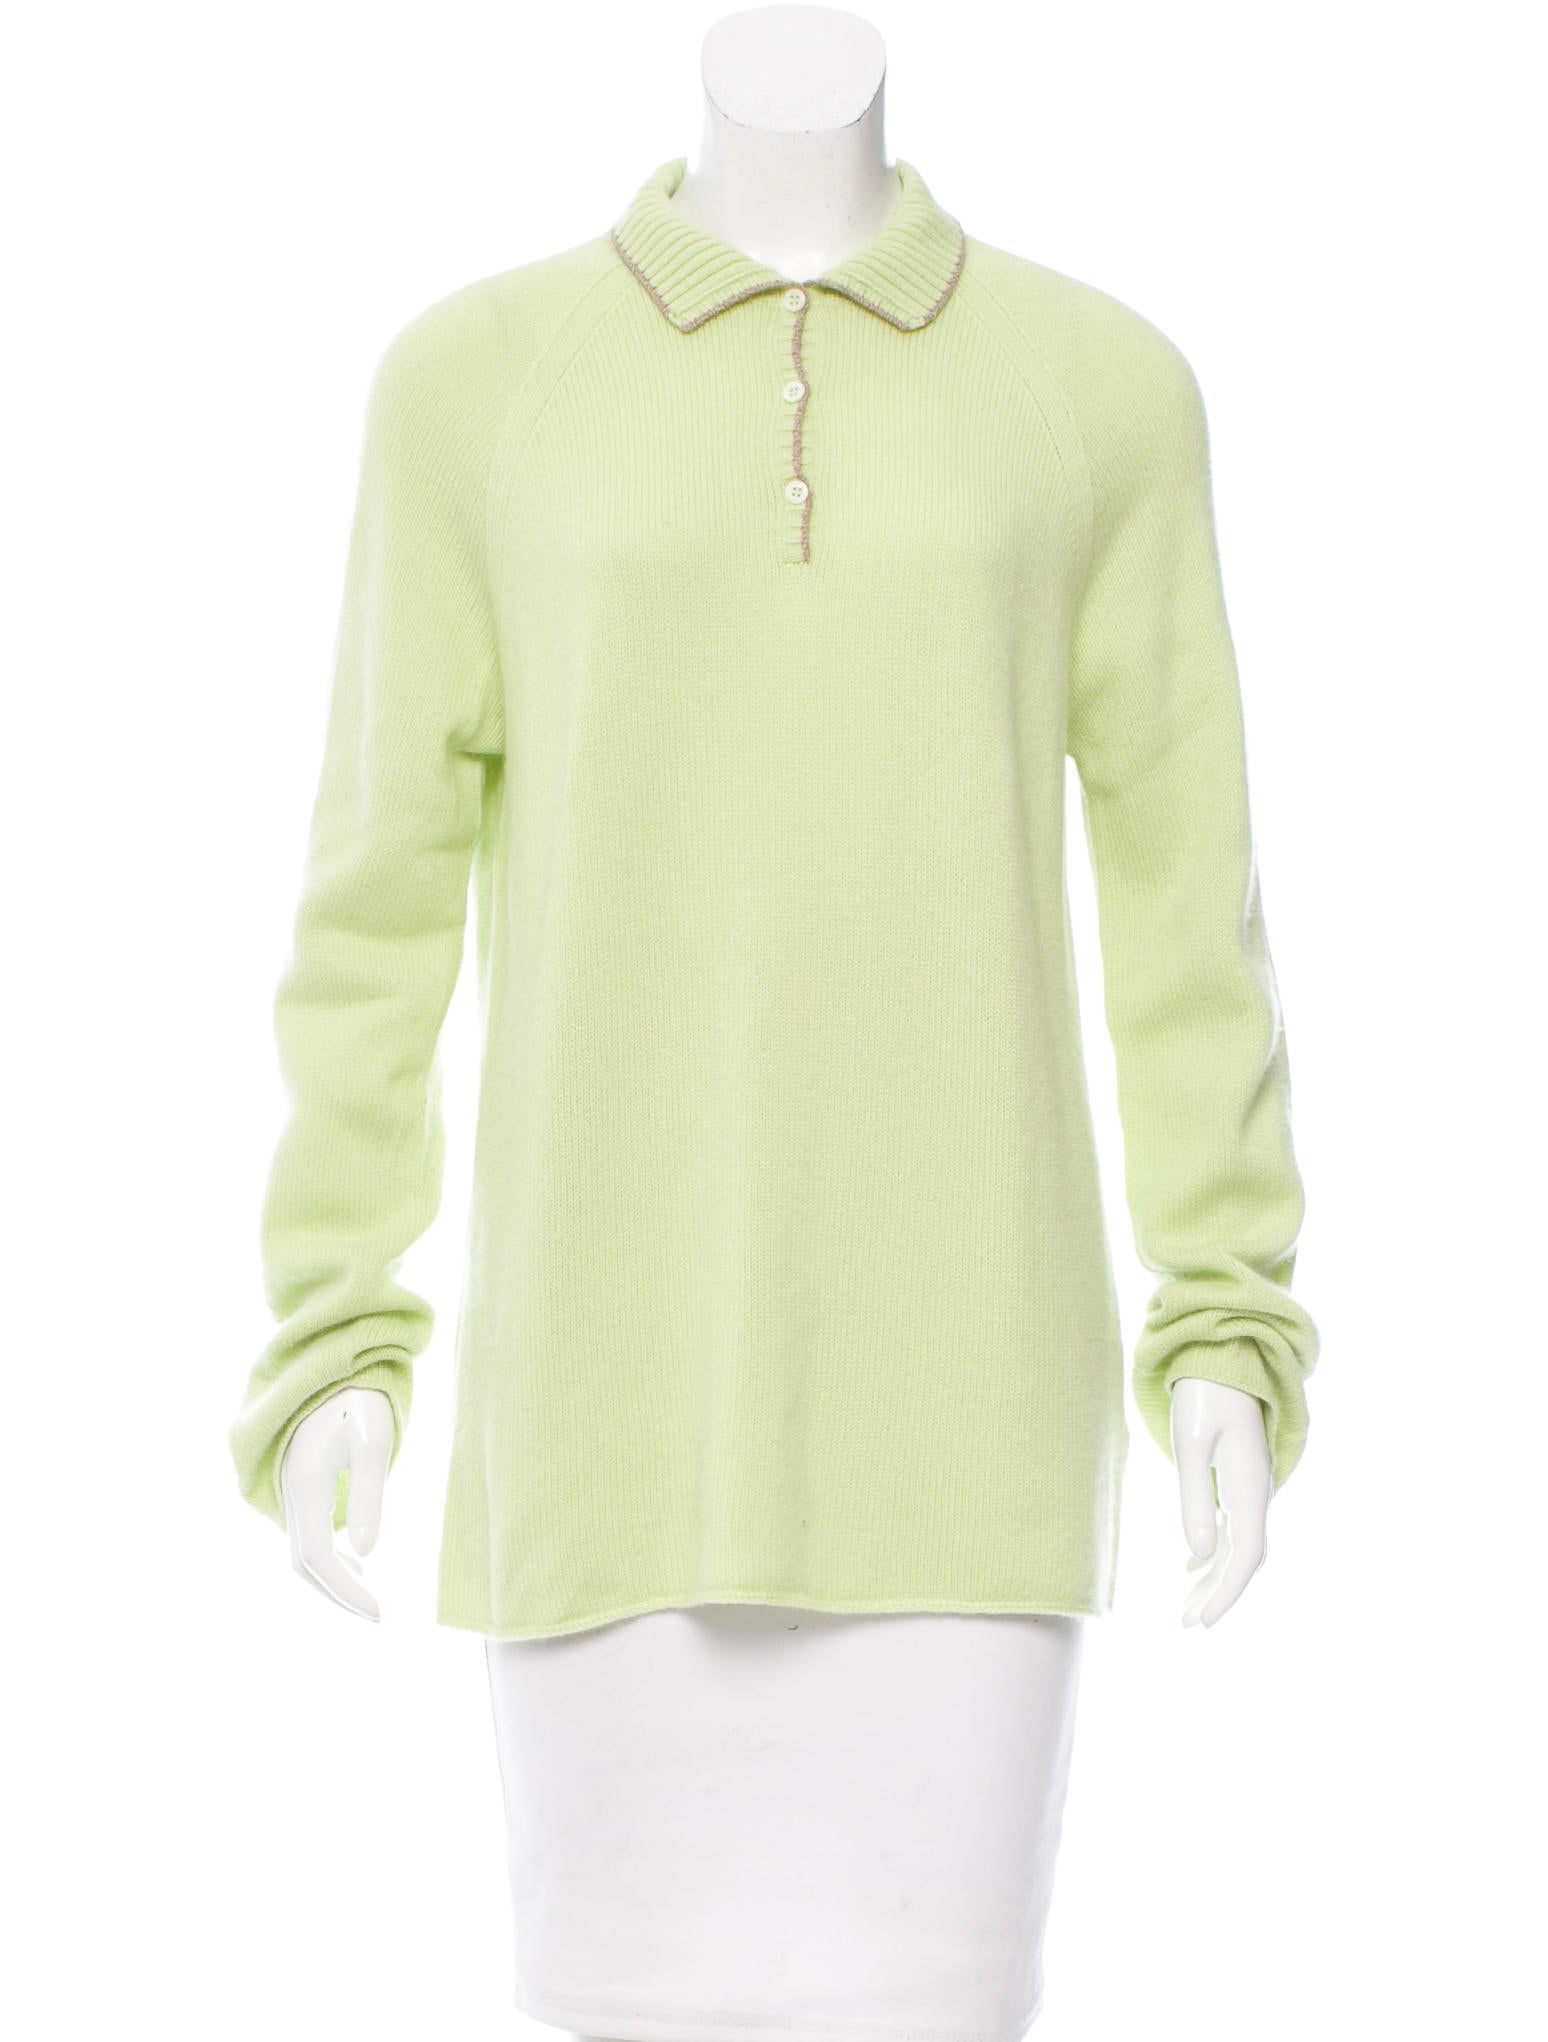 Buy xflavismo.ga Women's Green Cashmere Sweater. Similar products also available. SALE now on!Price: $